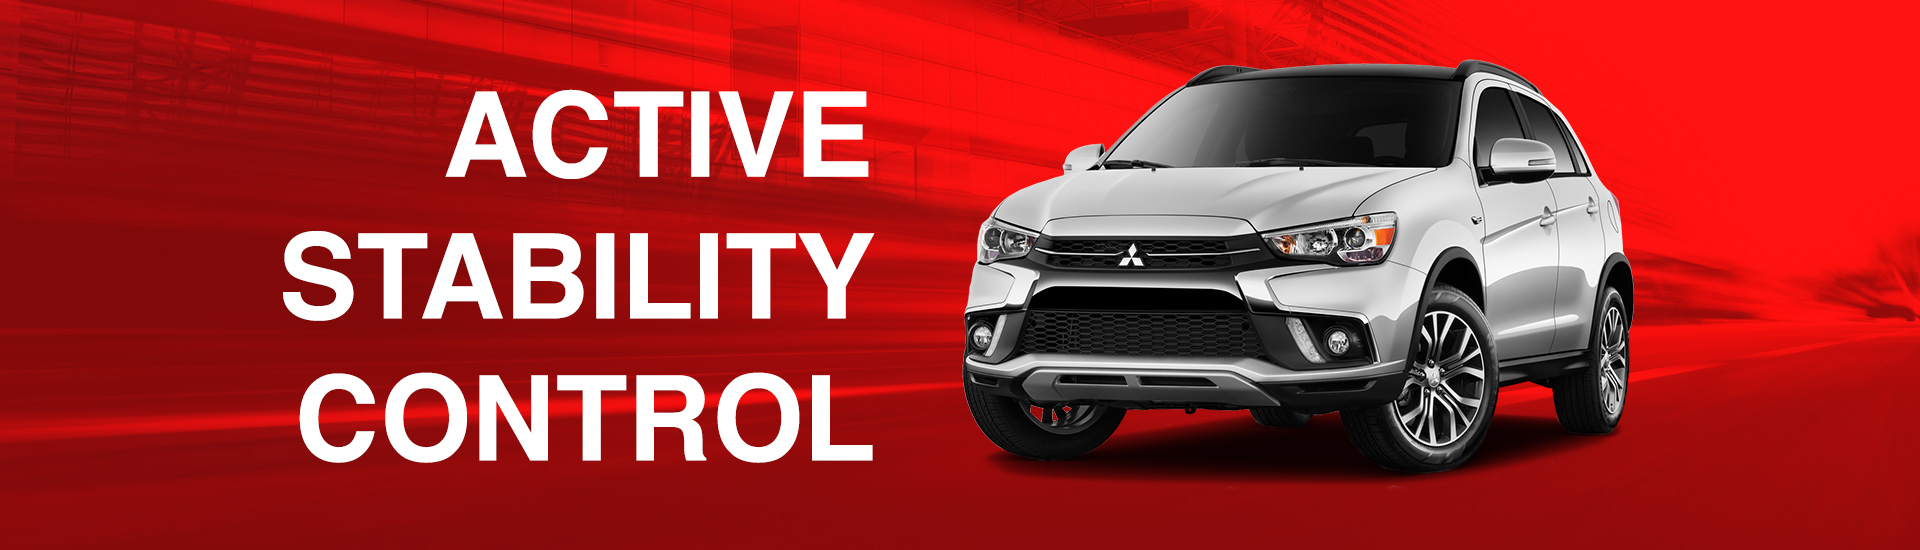 Active Stability Control Hero Image